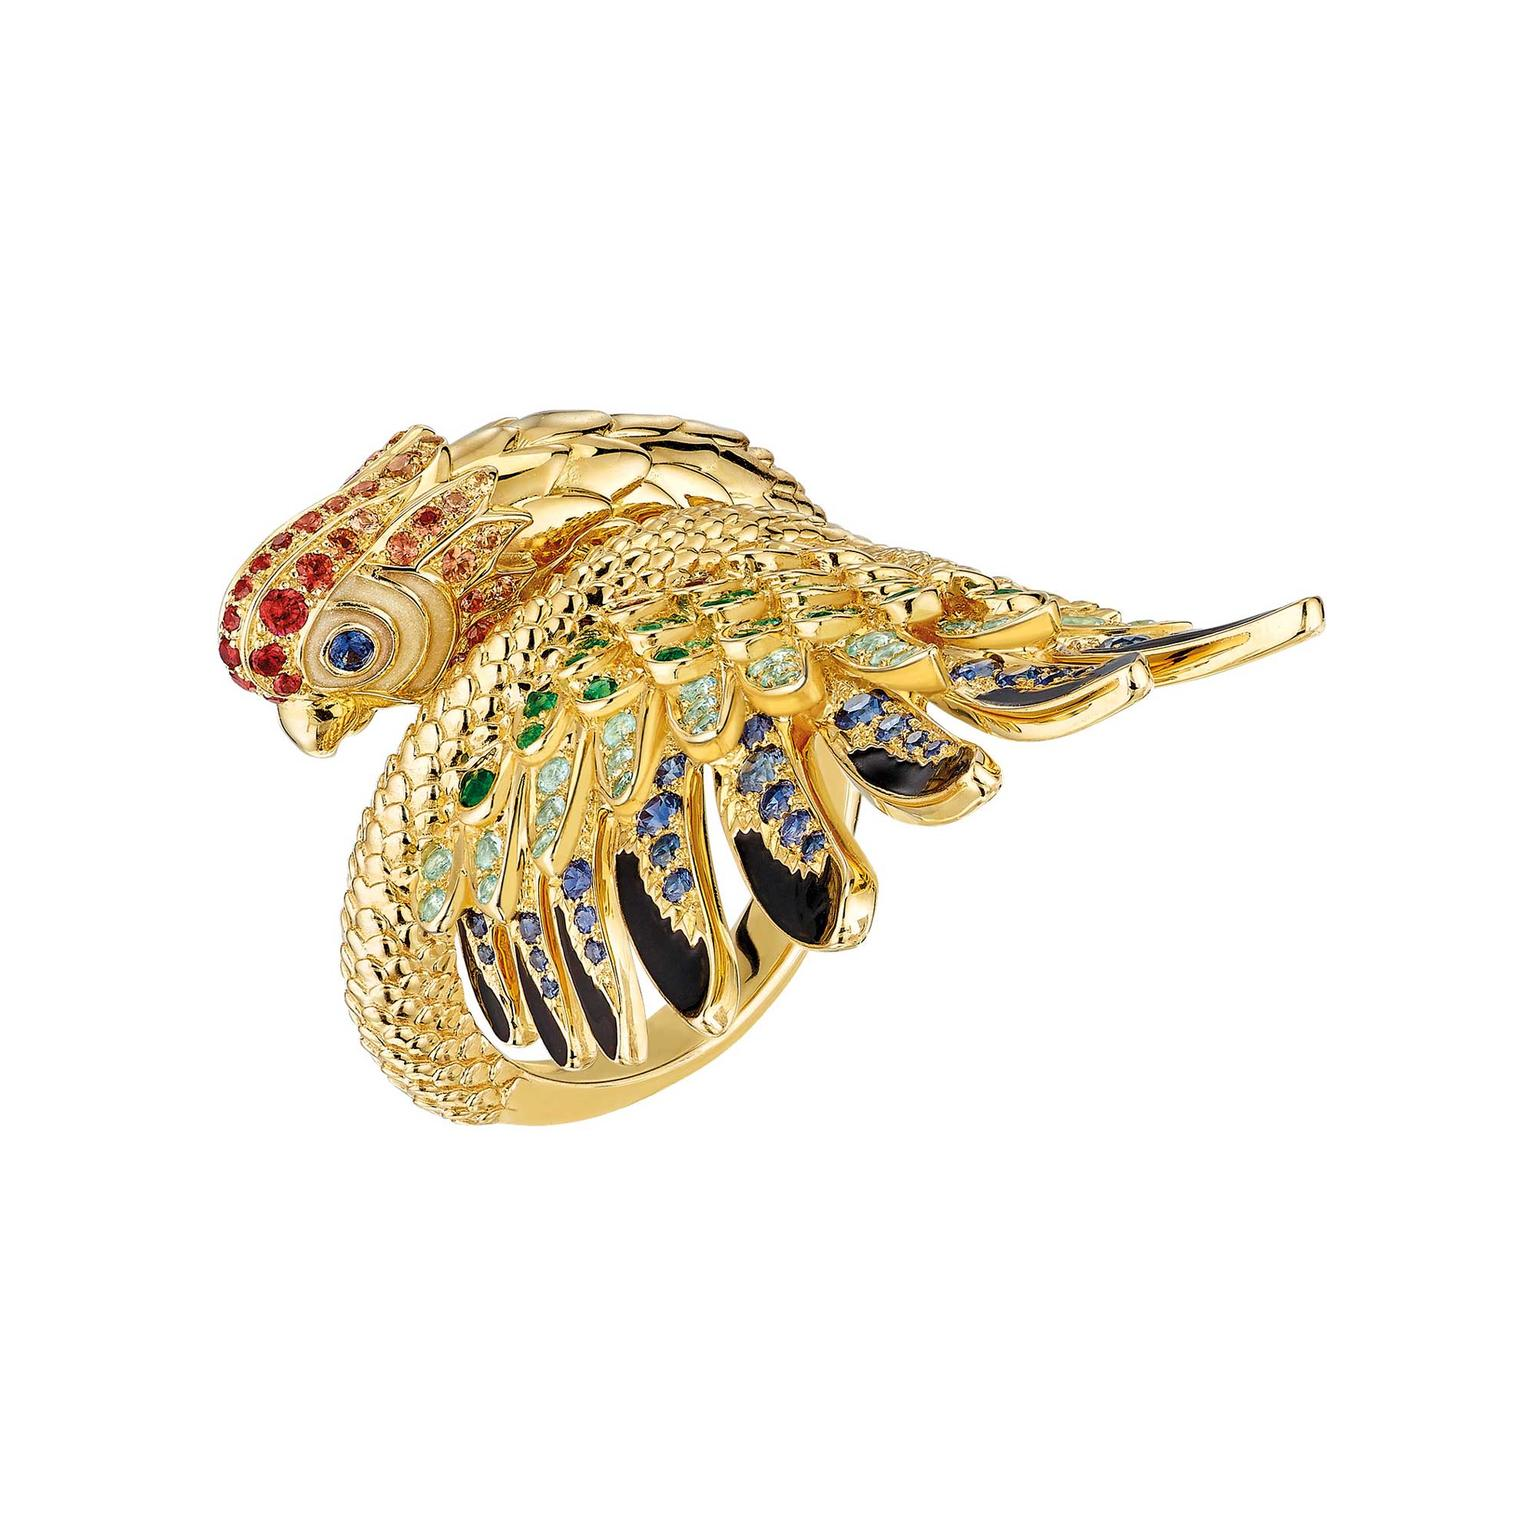 Lalique Perroquet parrot ring